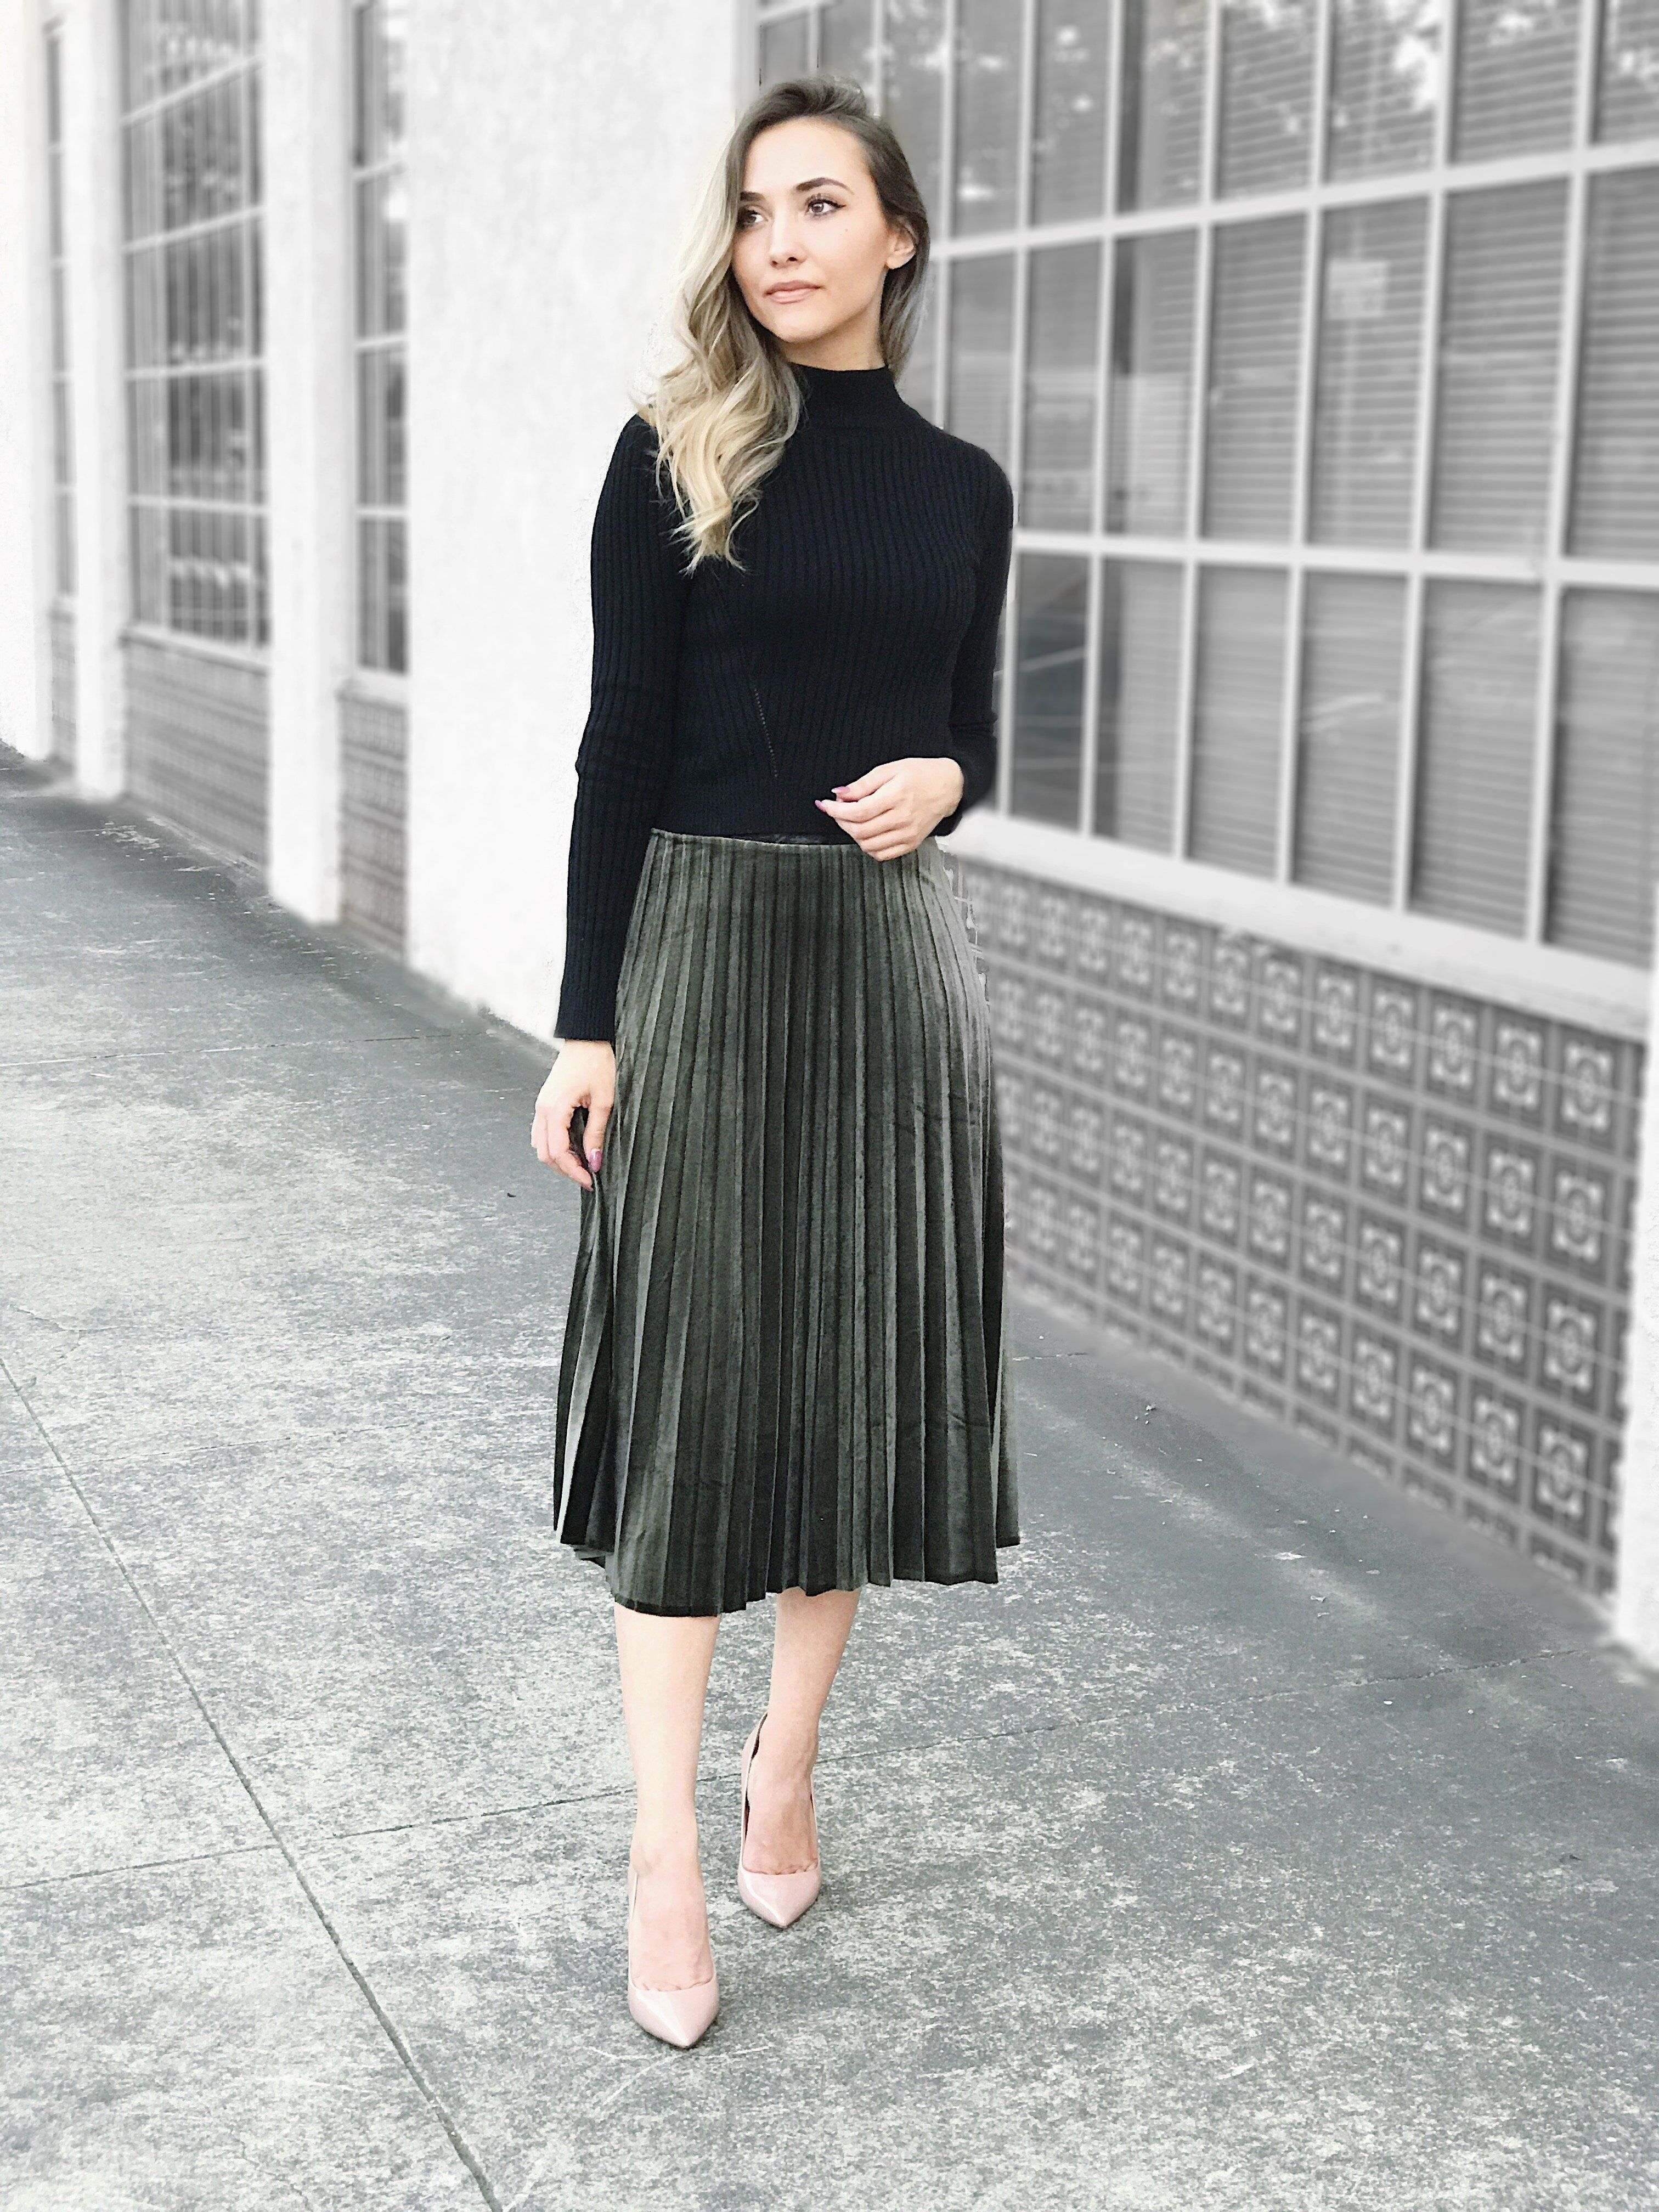 the olivia velvet pleated skirt is perfect for fall with